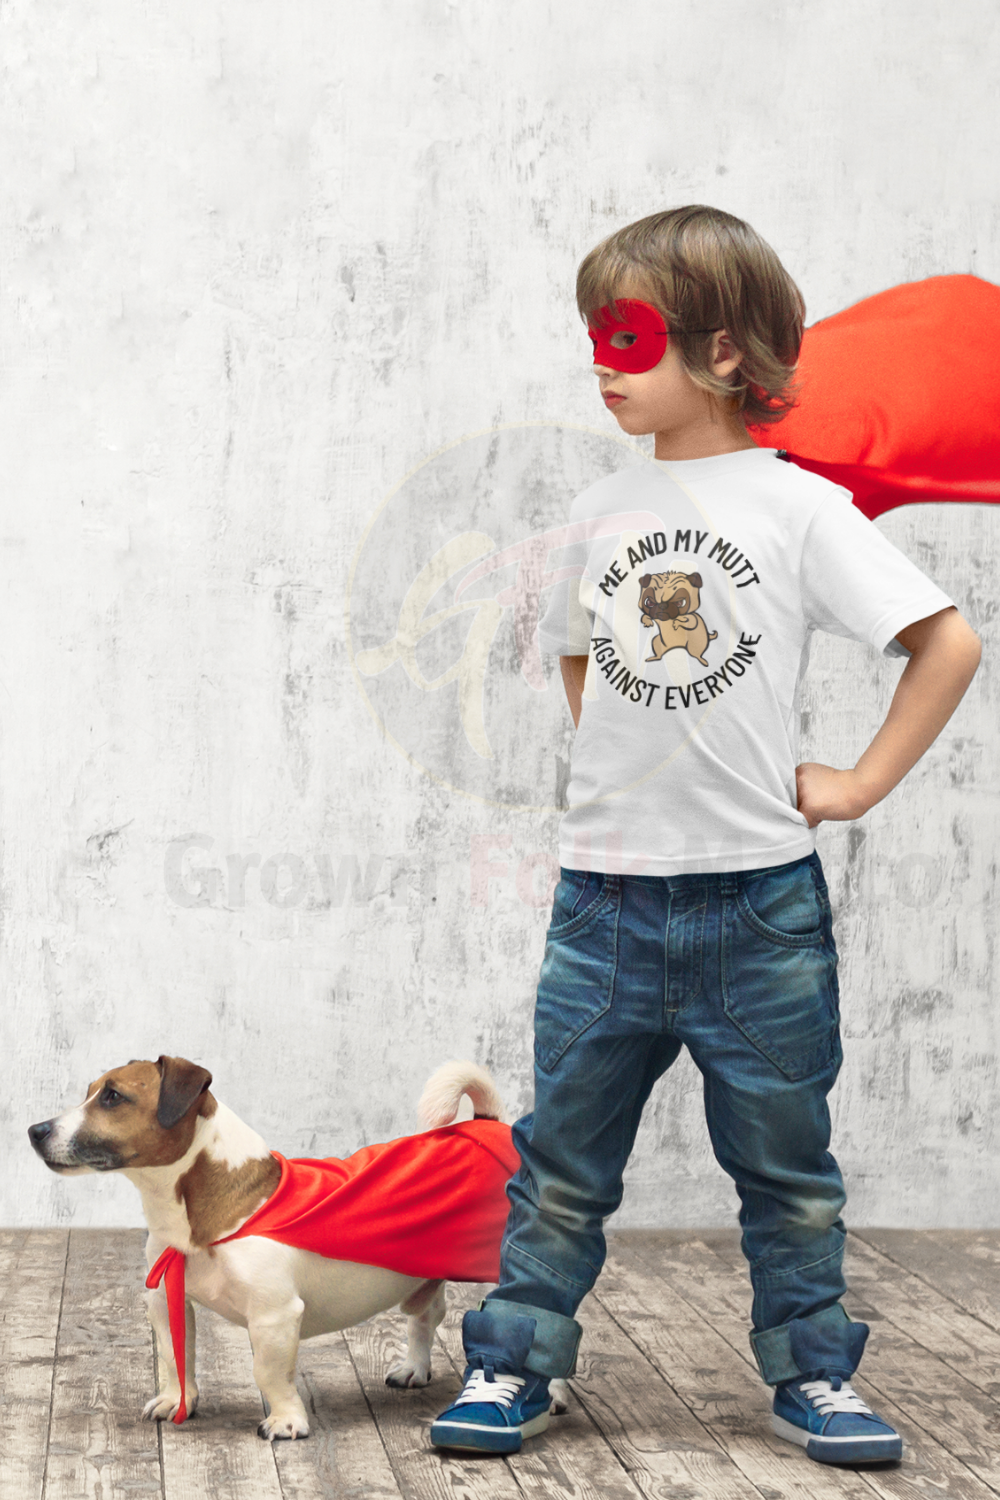 A child and his dog is a special friendship that can not be broken. Let your little one show off his admiration for his 4 legged best friend. #mutt #nationalmuttday #mansbestfriend